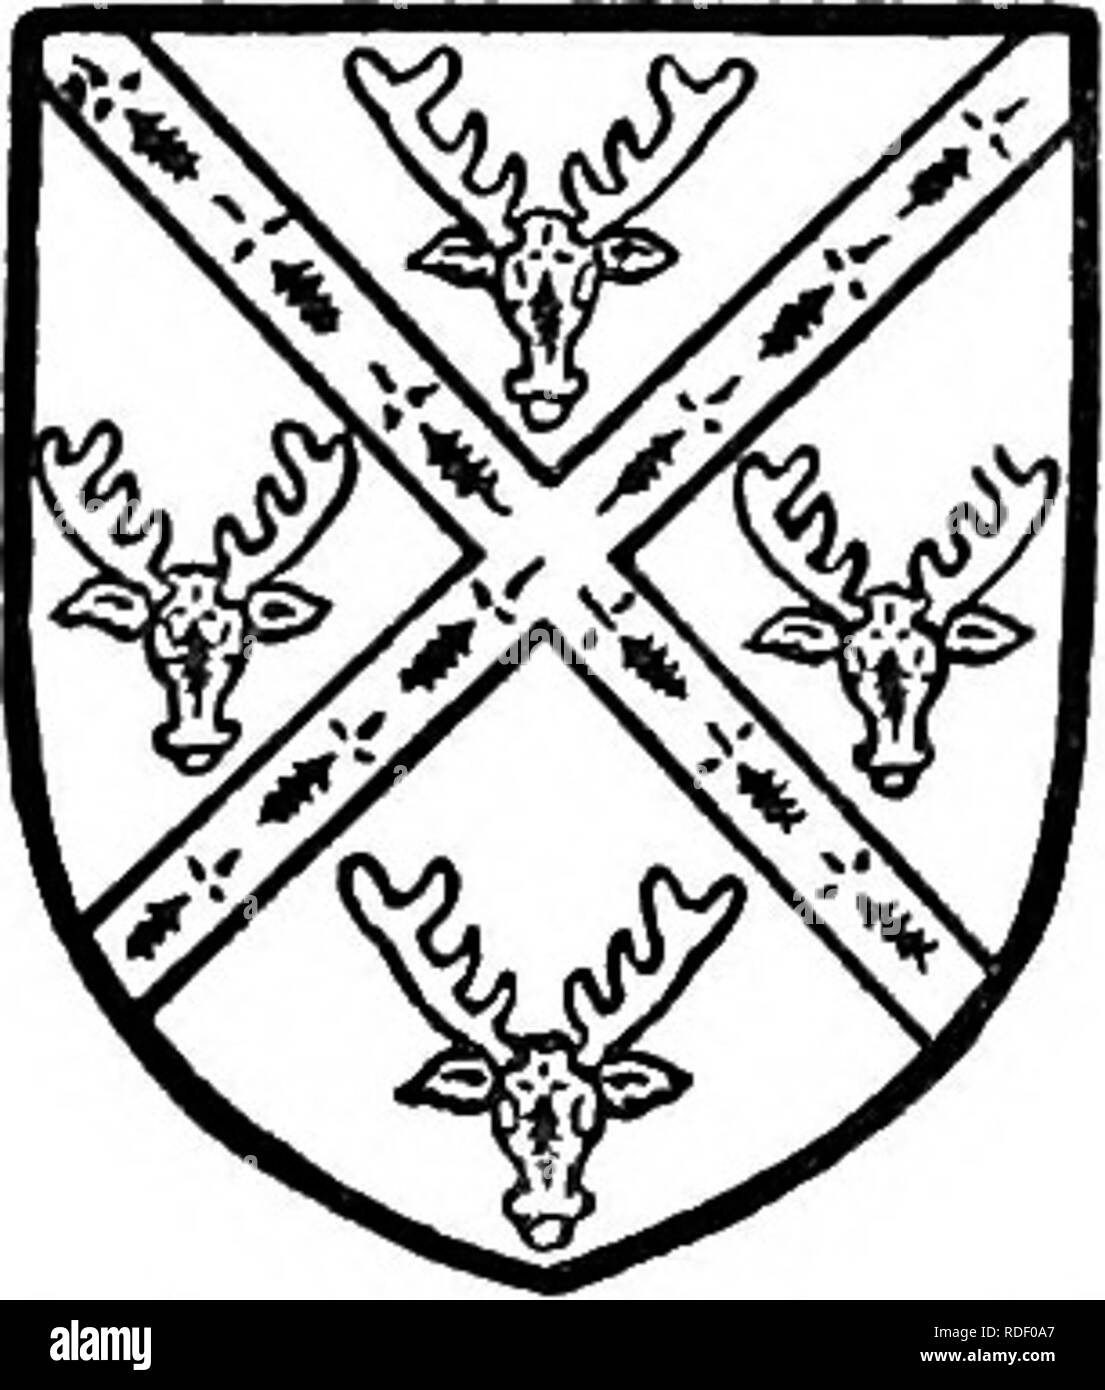 """. The Victoria history of the county of Lancaster;. Natural history. Leigh, Gules a croa engrailed argent befween four lozenges ermine^ a canton or. descended like Orrell to Mr. Roger Leigh, of Hindley Hall, AspuU. The shares of the Billinge"""" and Winstanley*' families can- not be traced satisfactorily. One of the quarters of the manor was acquired by the family of Bankes of Winstan- ley.^' Thomas and John Winstan- ley and Thomas Bispham,"""" as landowners of Billinge and Winstanley, contributed to a subsidy levied about 1556. The freeholders in 1600 were : Anderton of Birchley, Thomas B - Stock Image"""